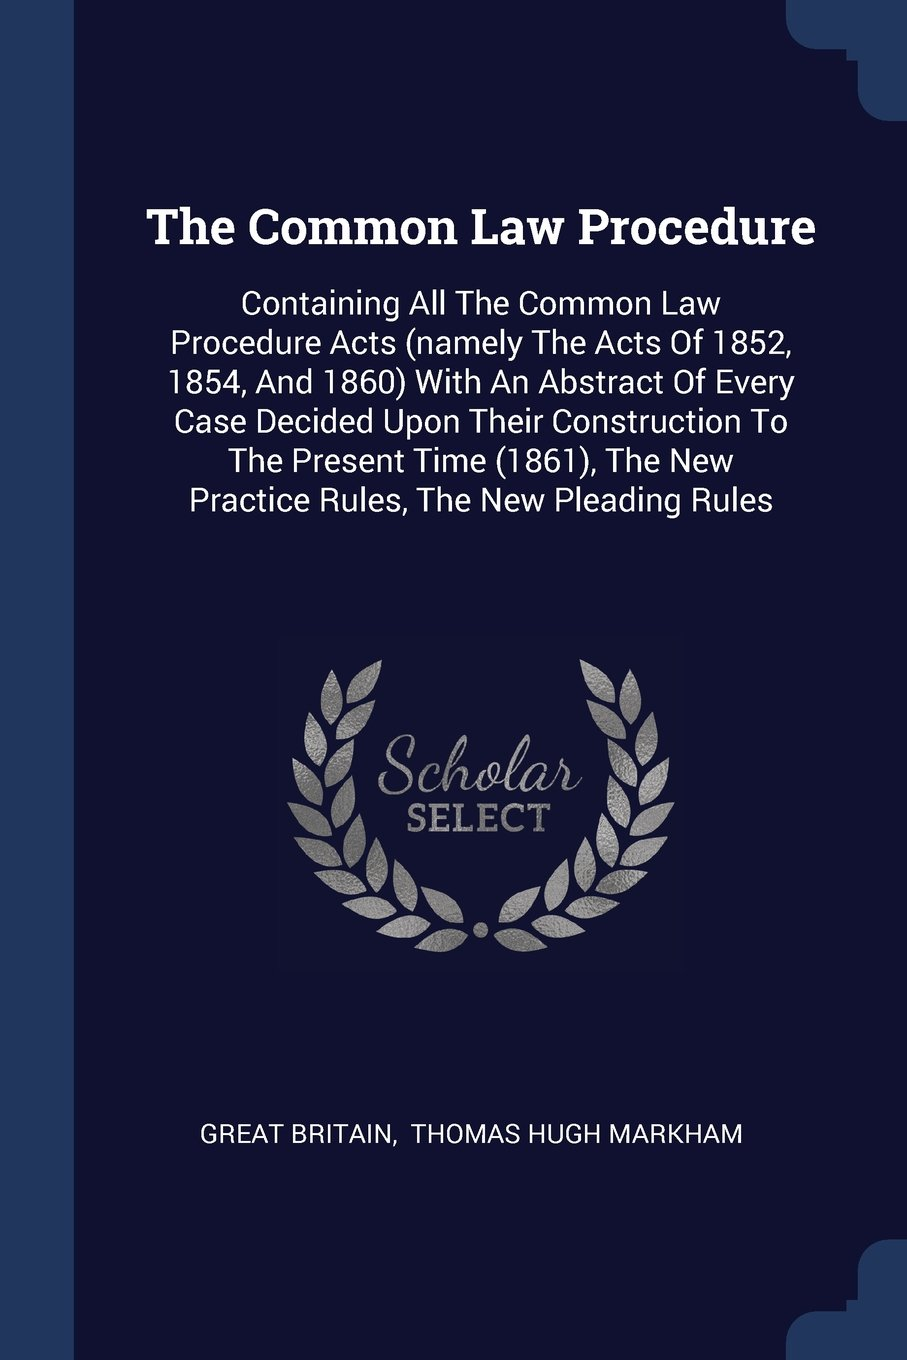 The Common Law Procedure: Containing All The Common Law Procedure Acts (namely The Acts Of 1852, 1854, And 1860) With An Abstract Of Every Case ... New Practice Rules, The New Pleading Rules ebook